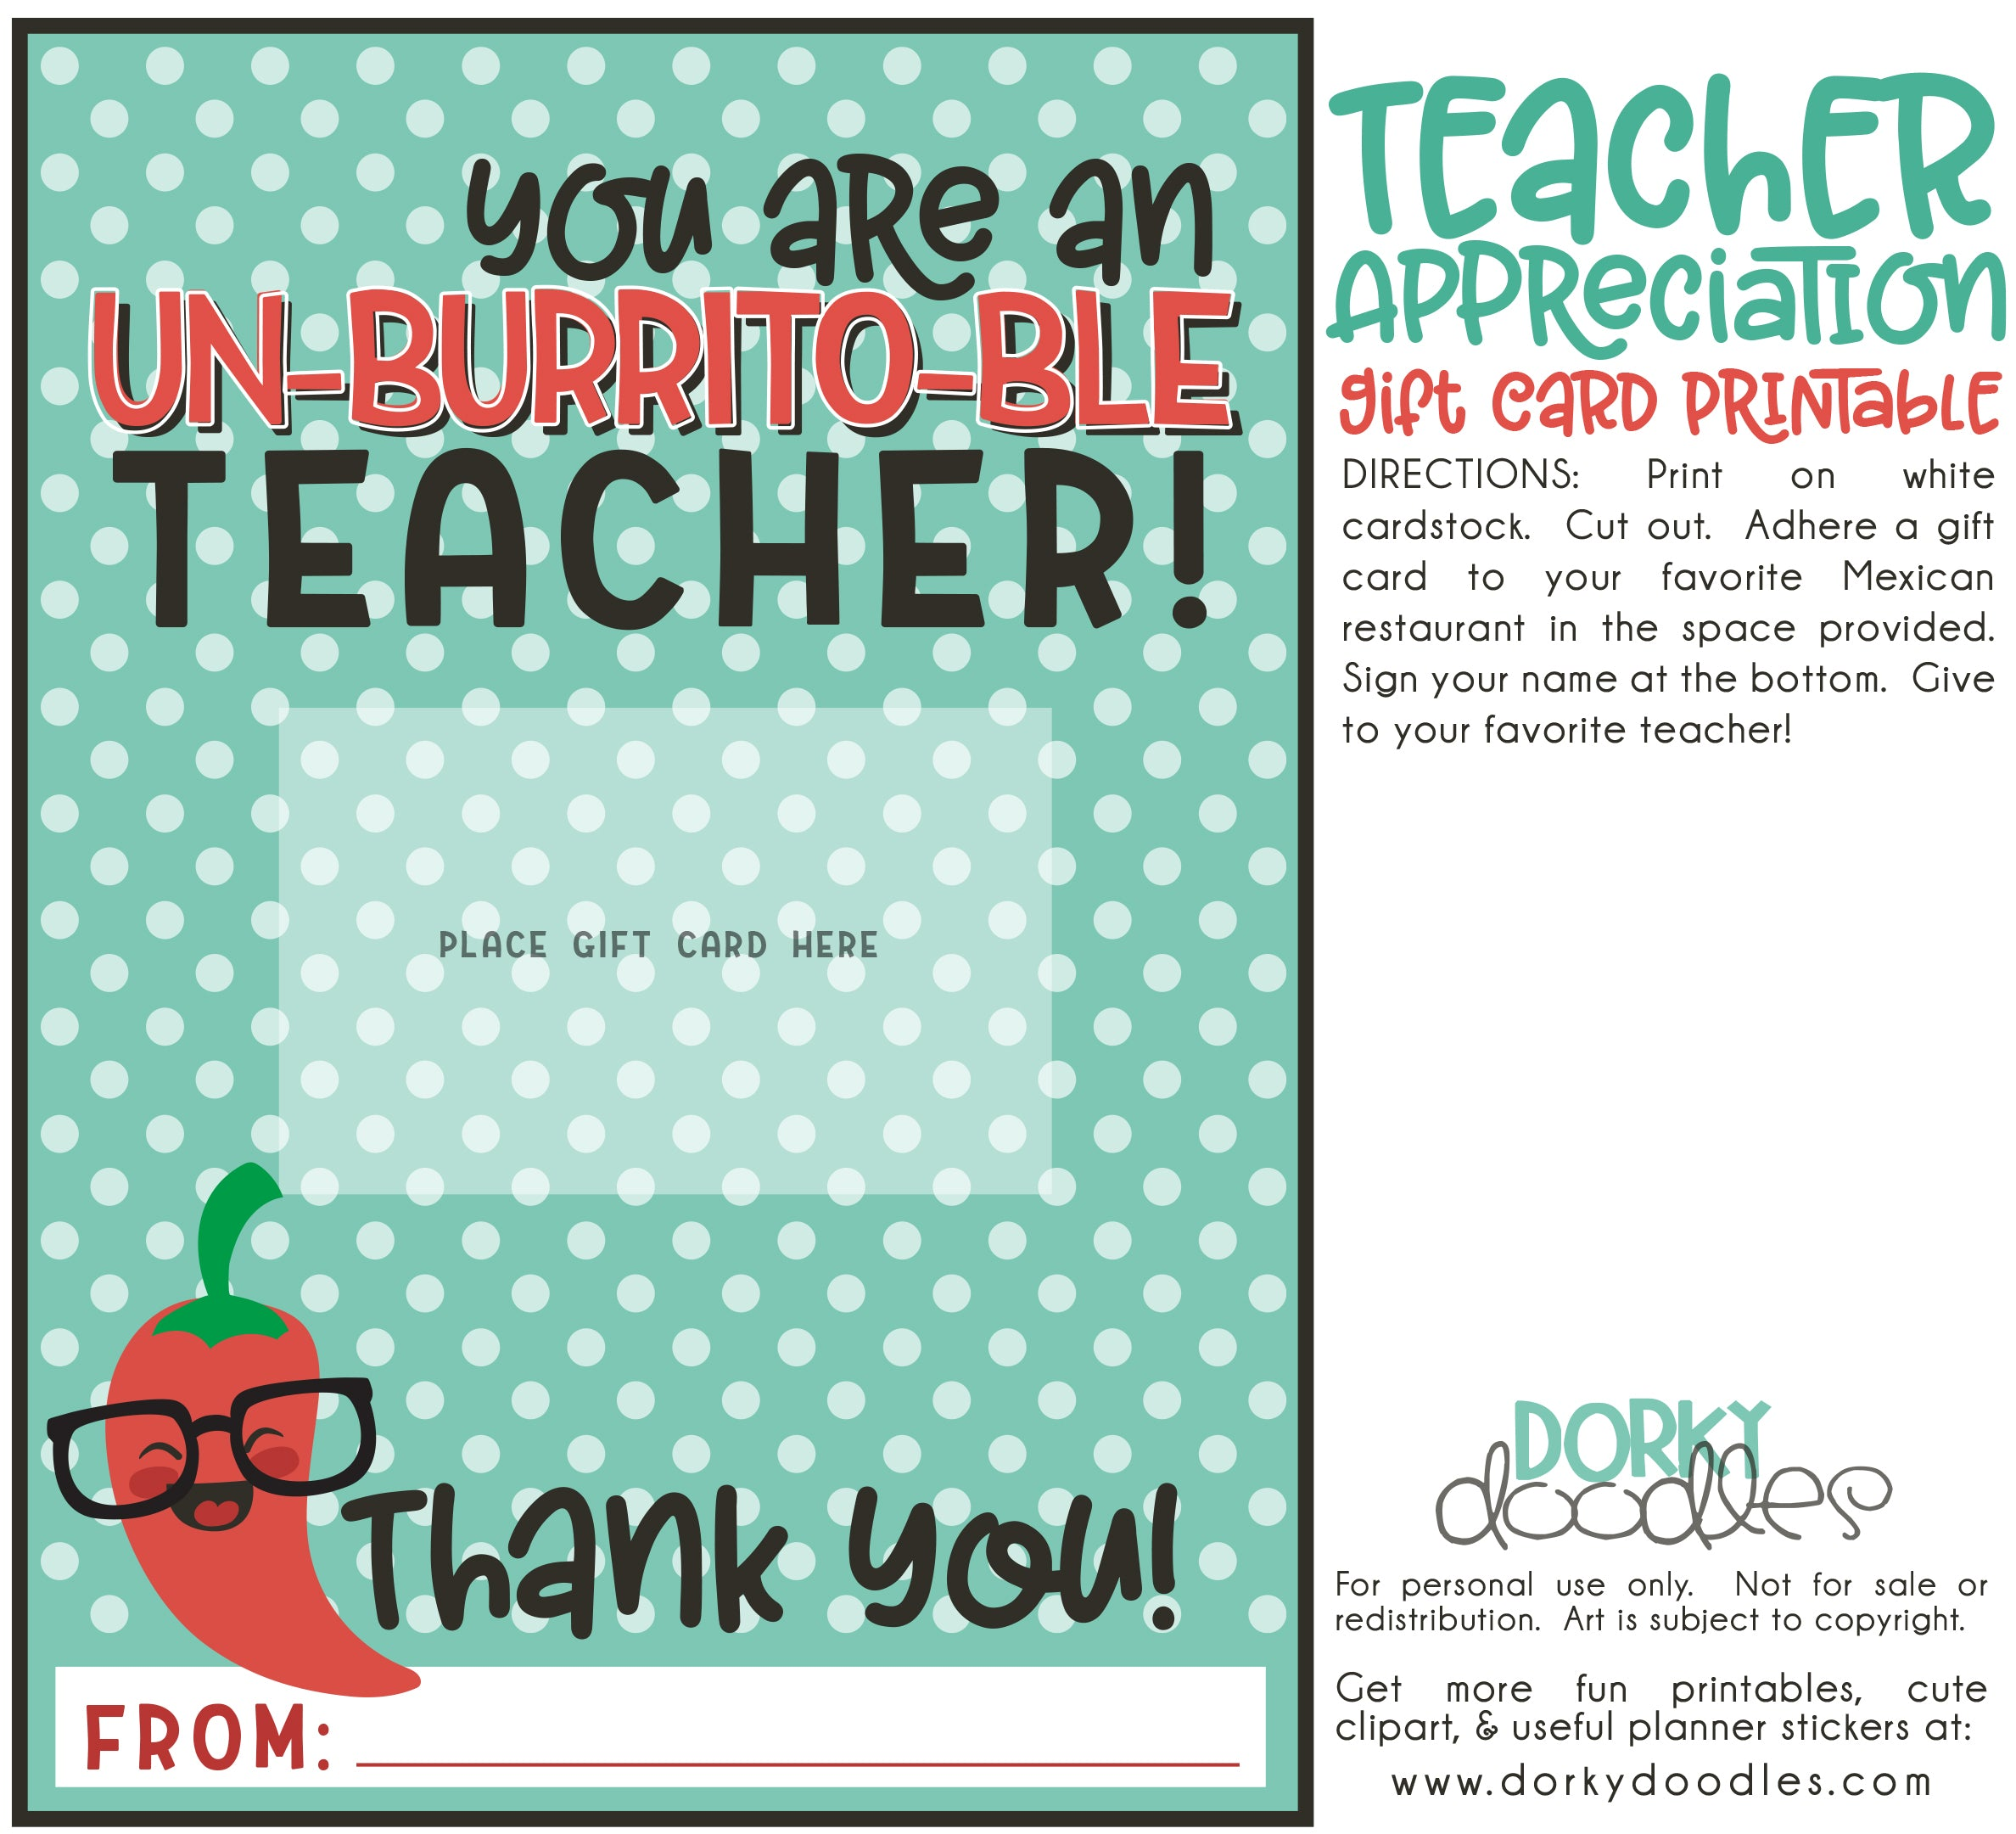 graphic regarding Printable Restaurant Gift Cards named Instructor Appreciation Reward Card Printable Dorky Doodles